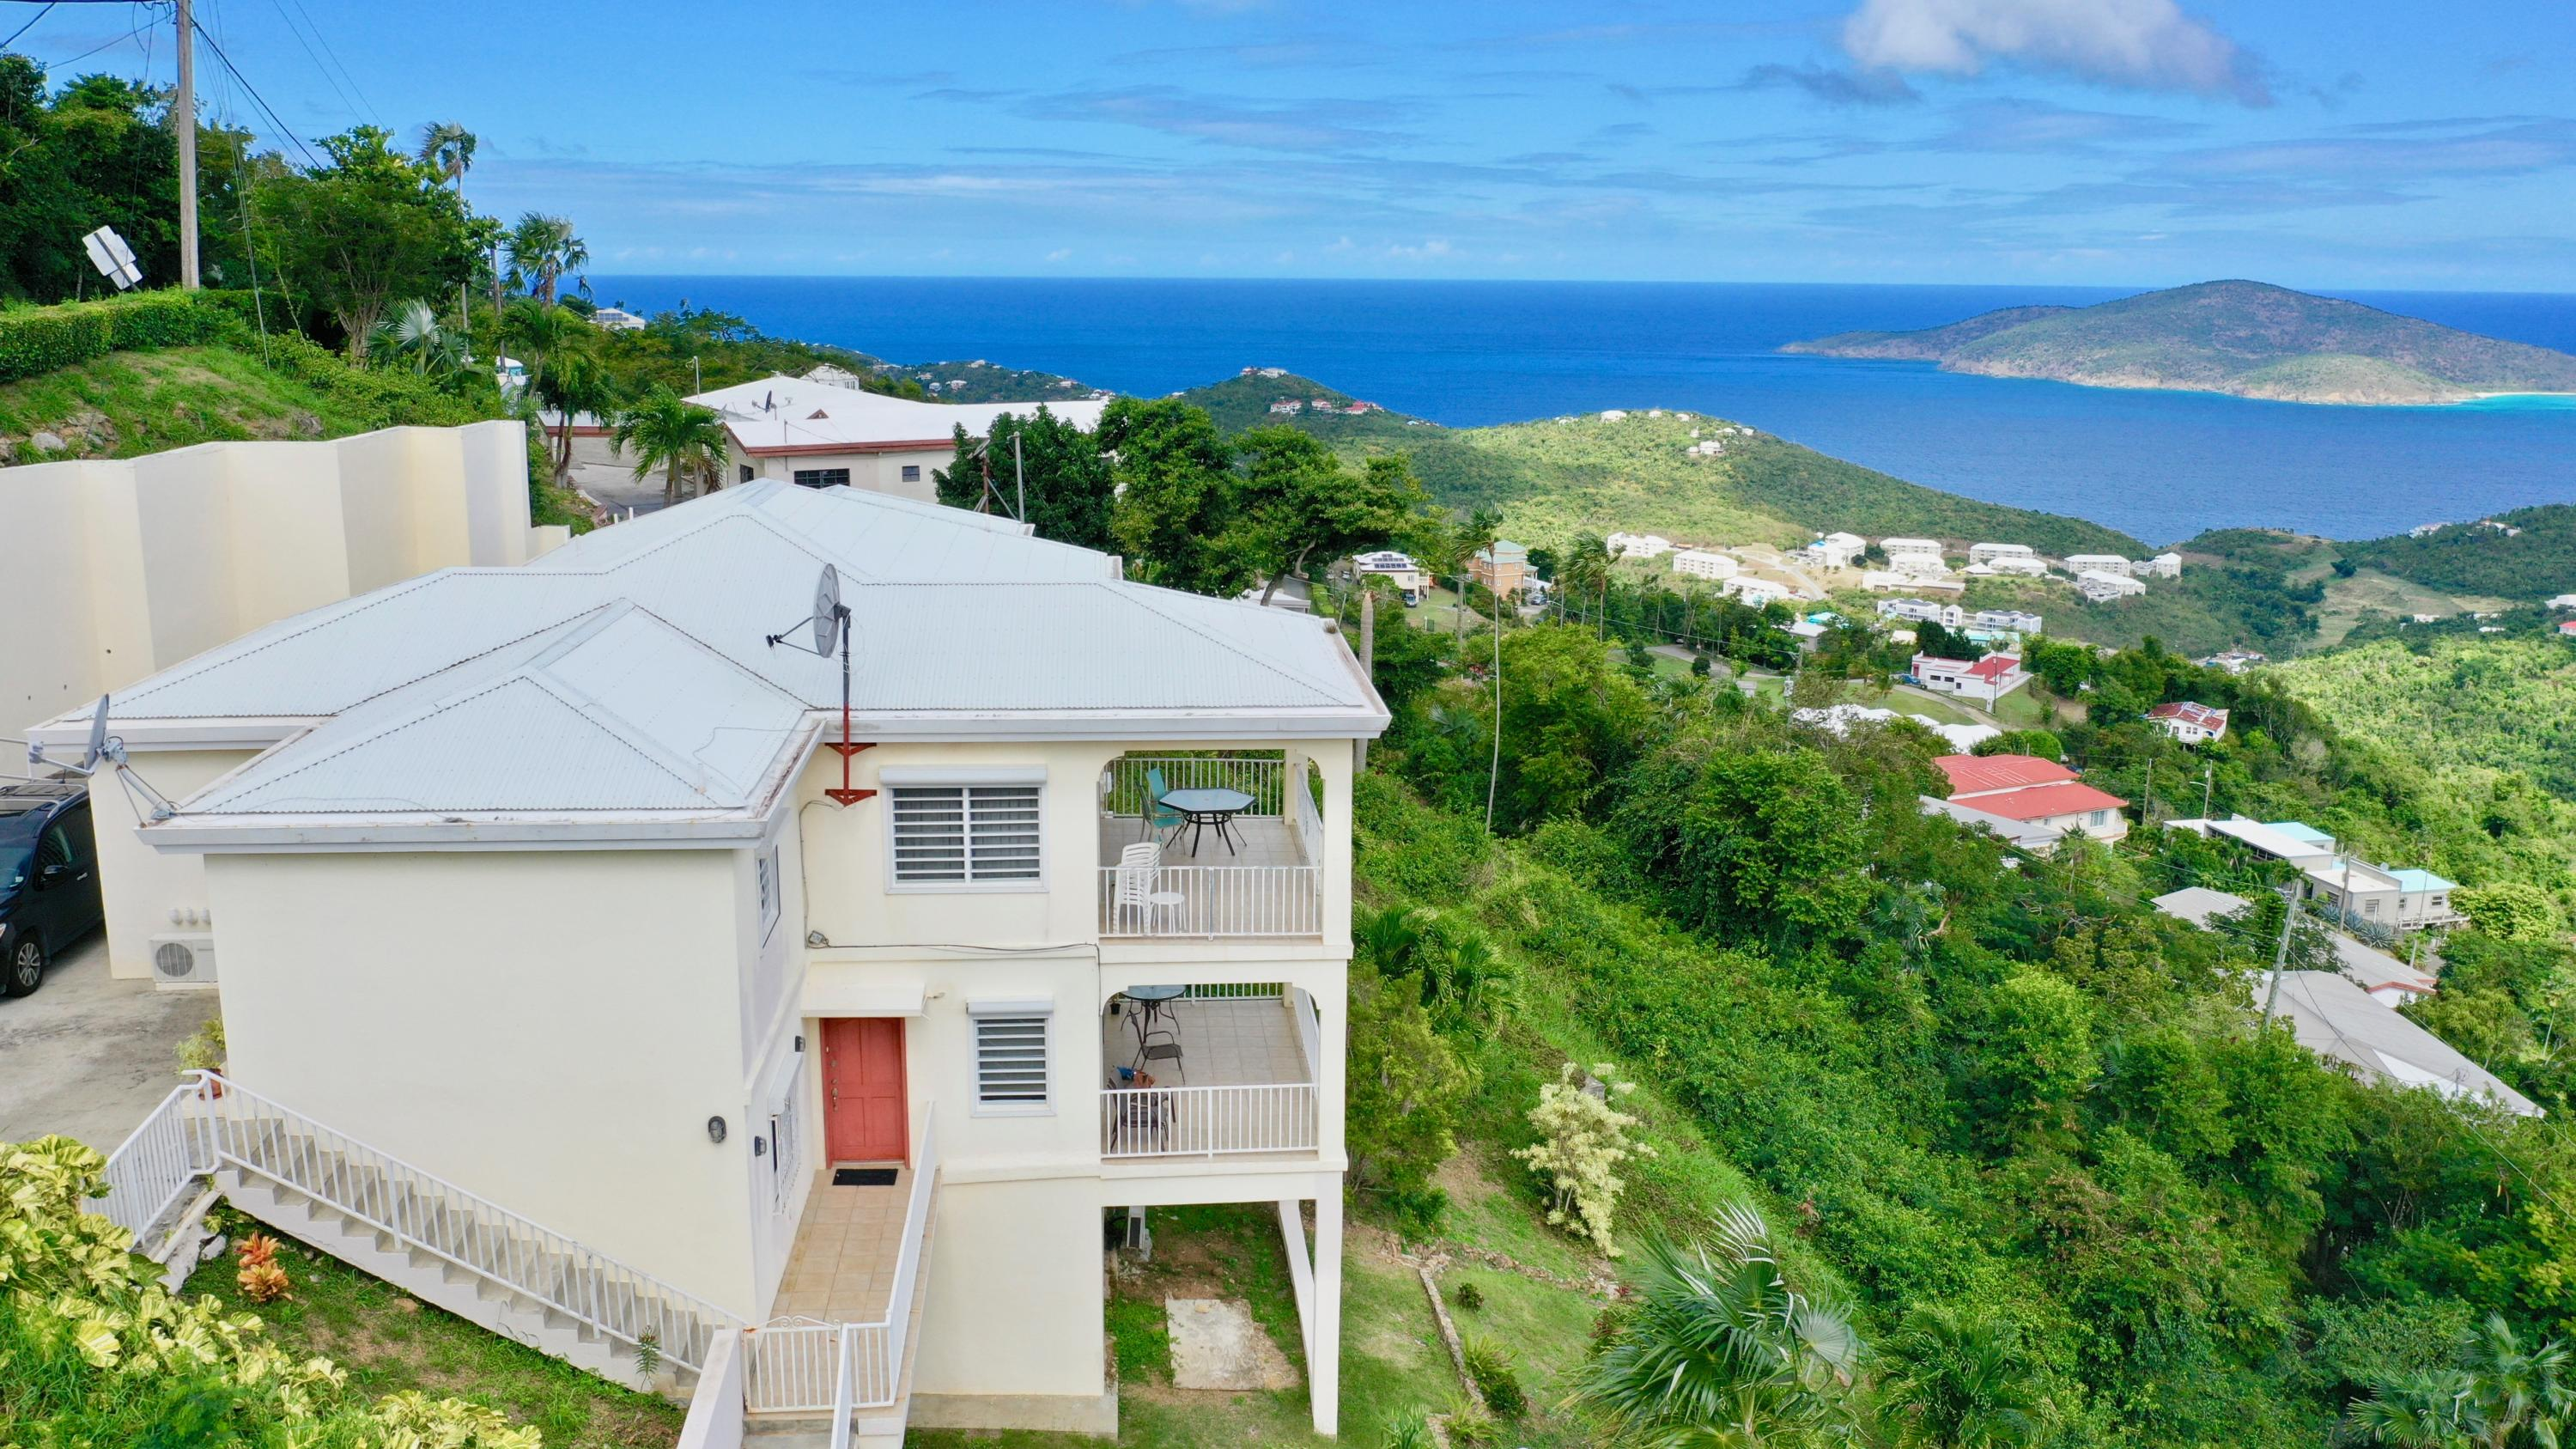 Multi-Family Home for Sale at 2-20 St. Joseph & Rosendahl GNS 2-20 St. Joseph & Rosendahl GNS St Thomas, Virgin Islands 00802 United States Virgin Islands